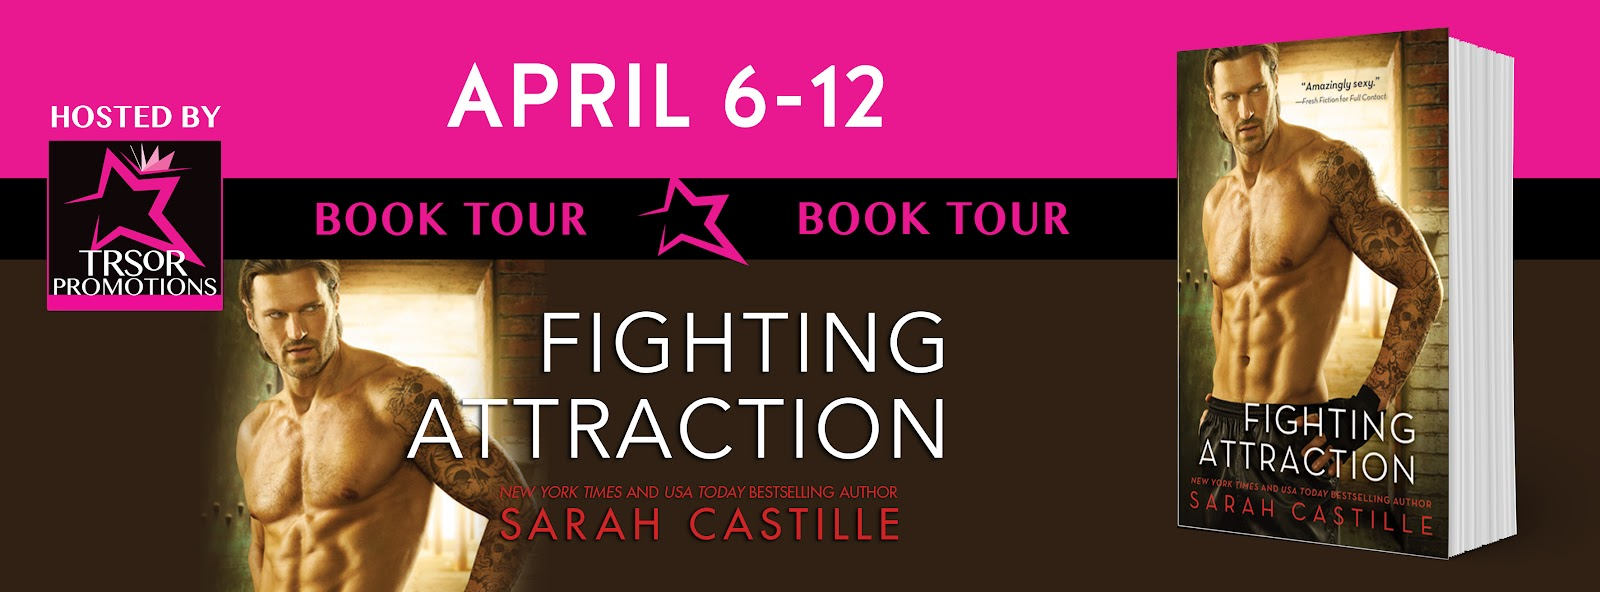 FIGHTING_ATTRACTION_BOOK_TOUR.jpg